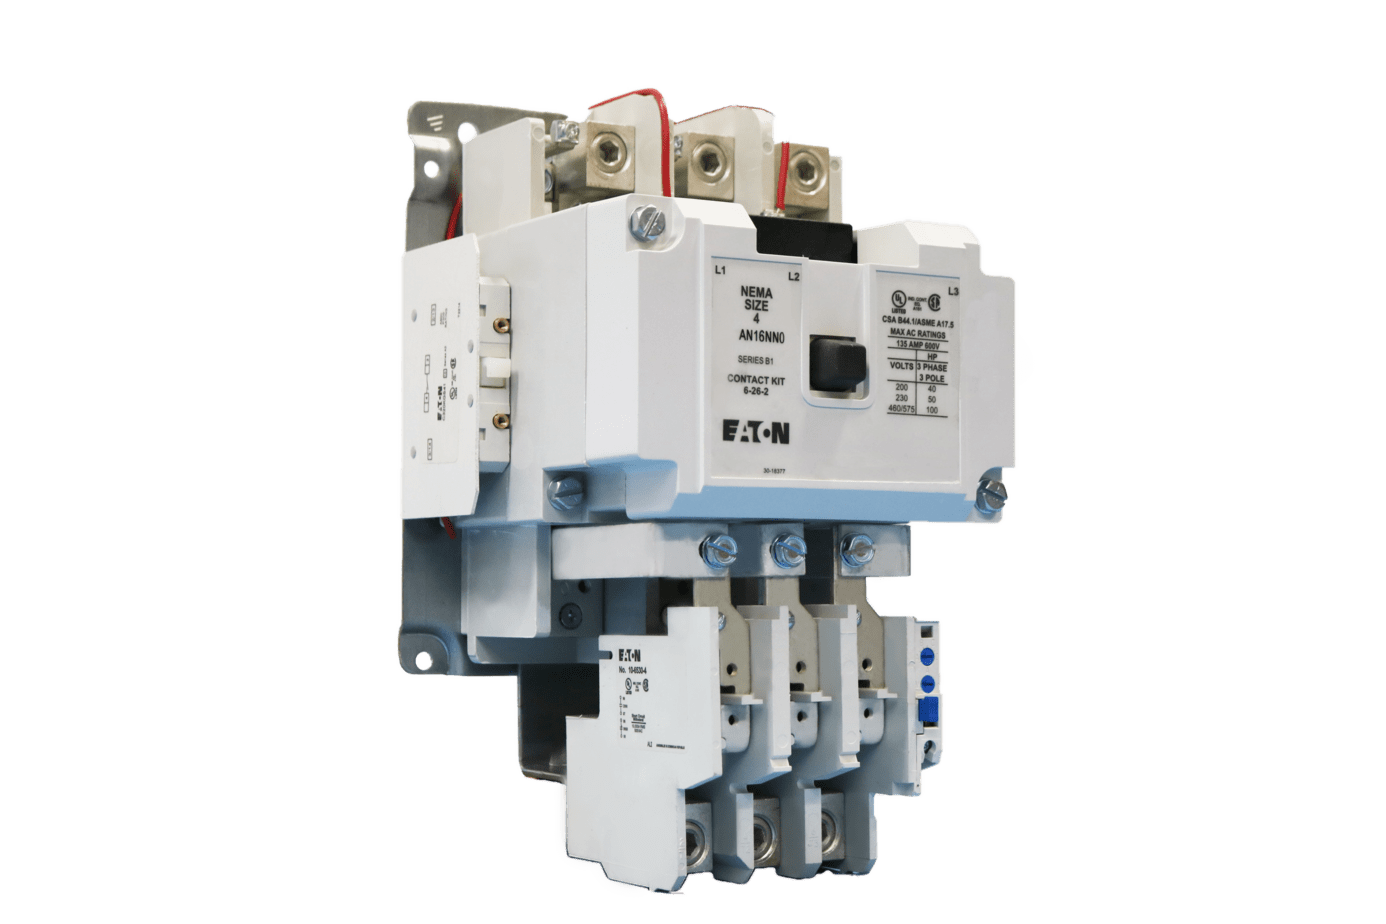 Cbione Circuit Breaker Solutions Specialist At Electronics Repair Center Inc We Specialize In Industrial Motor Control Specializing